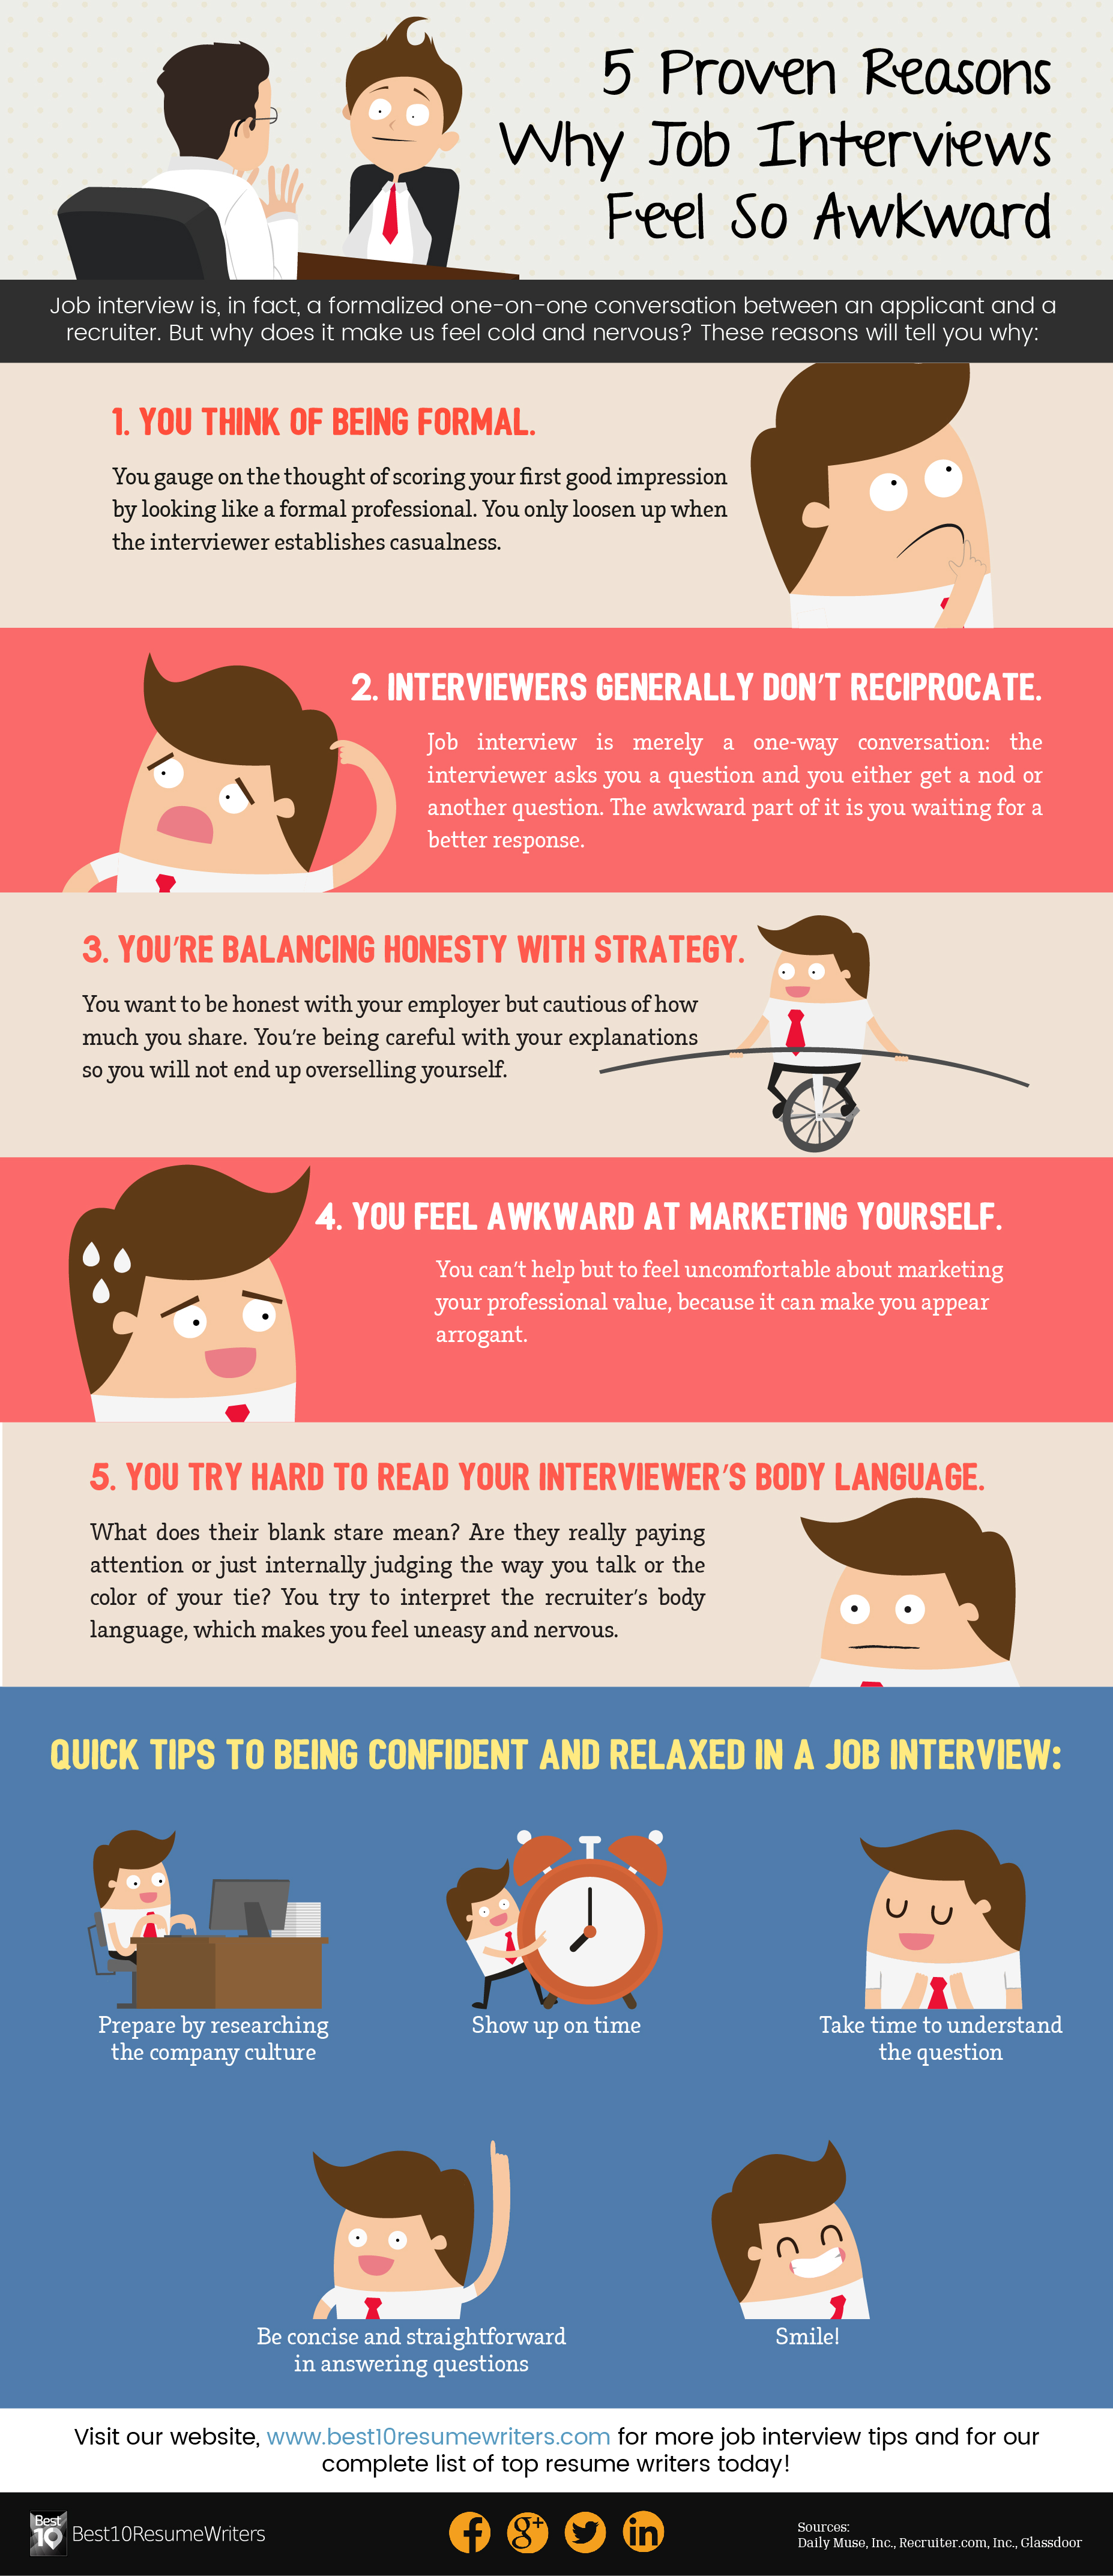 Job Interviews Feel Awkward: 5 Reasons Behind It [Infographic]